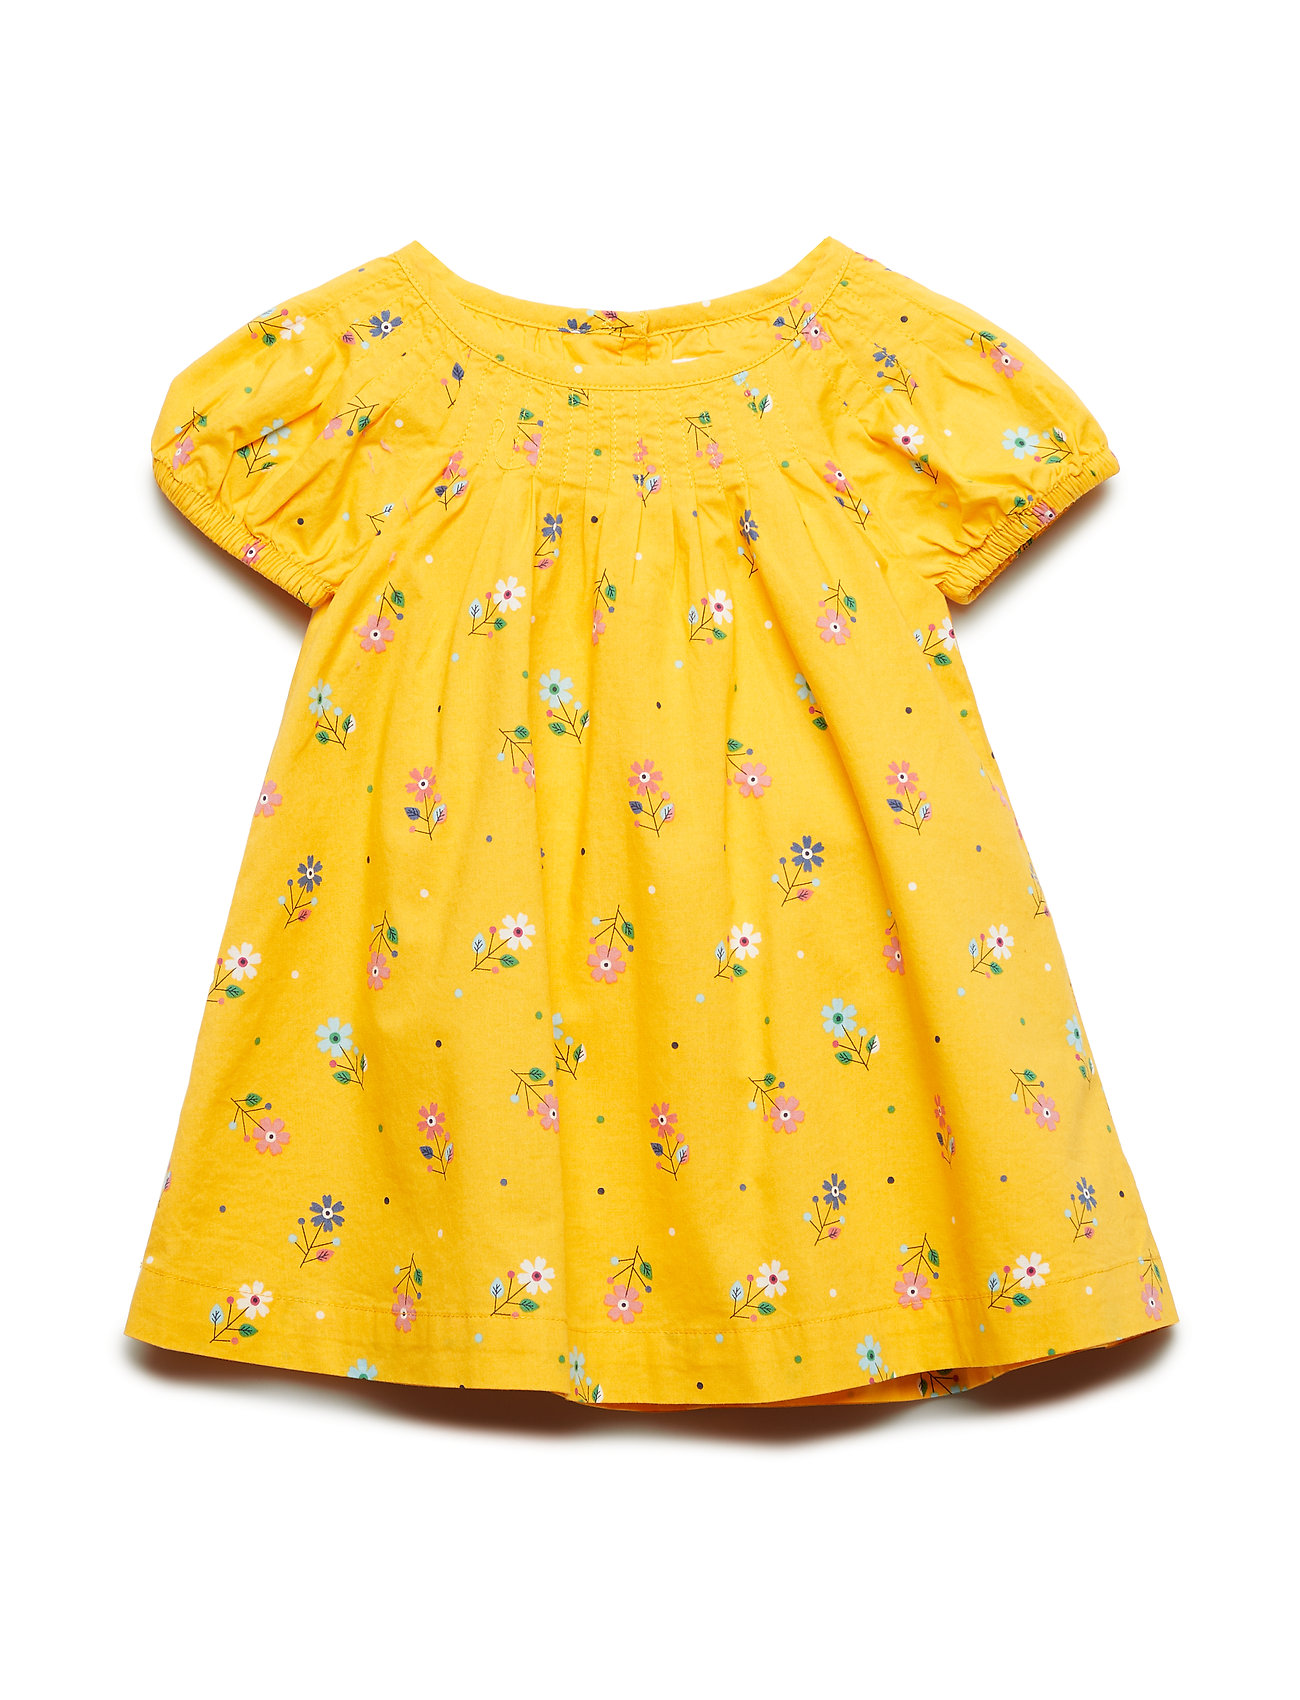 GAP Toddler Puff-Sleeve Dress - MINI YELLOW FLORAL